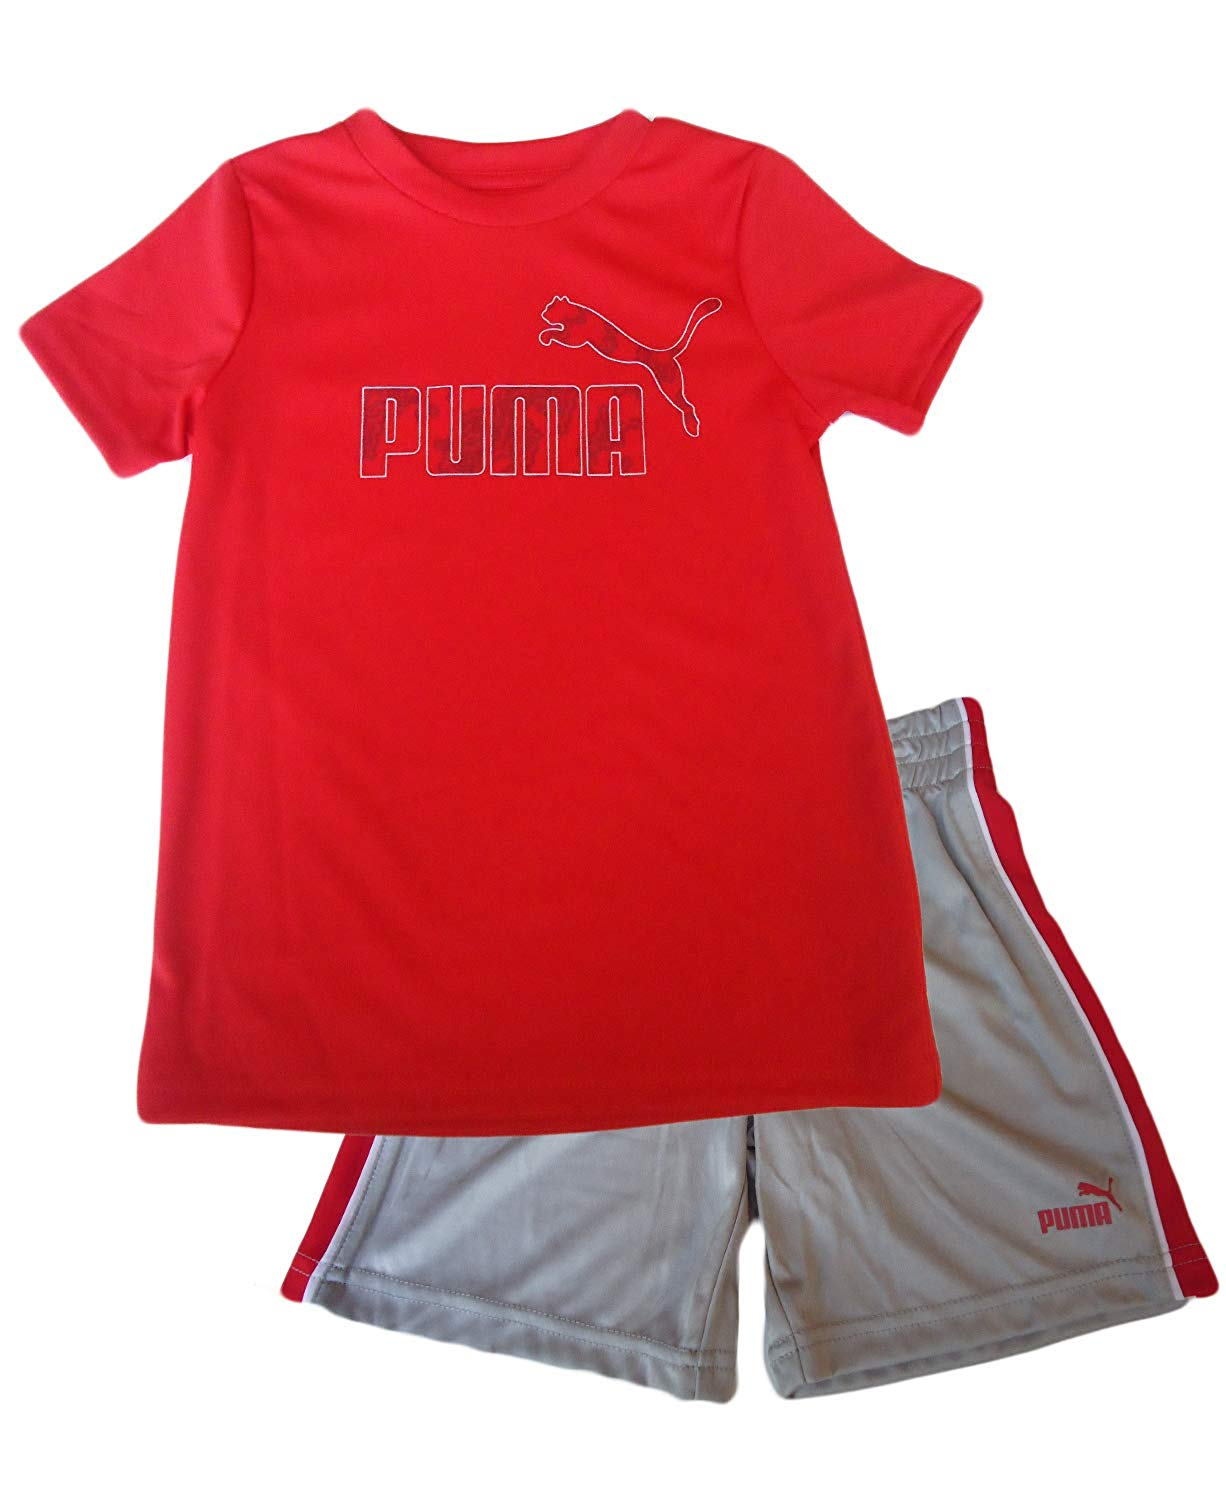 fc18509ee39 Toddler Boys: PUMA 2PC Tee and Short Set - Baby Clothes, Baby ...